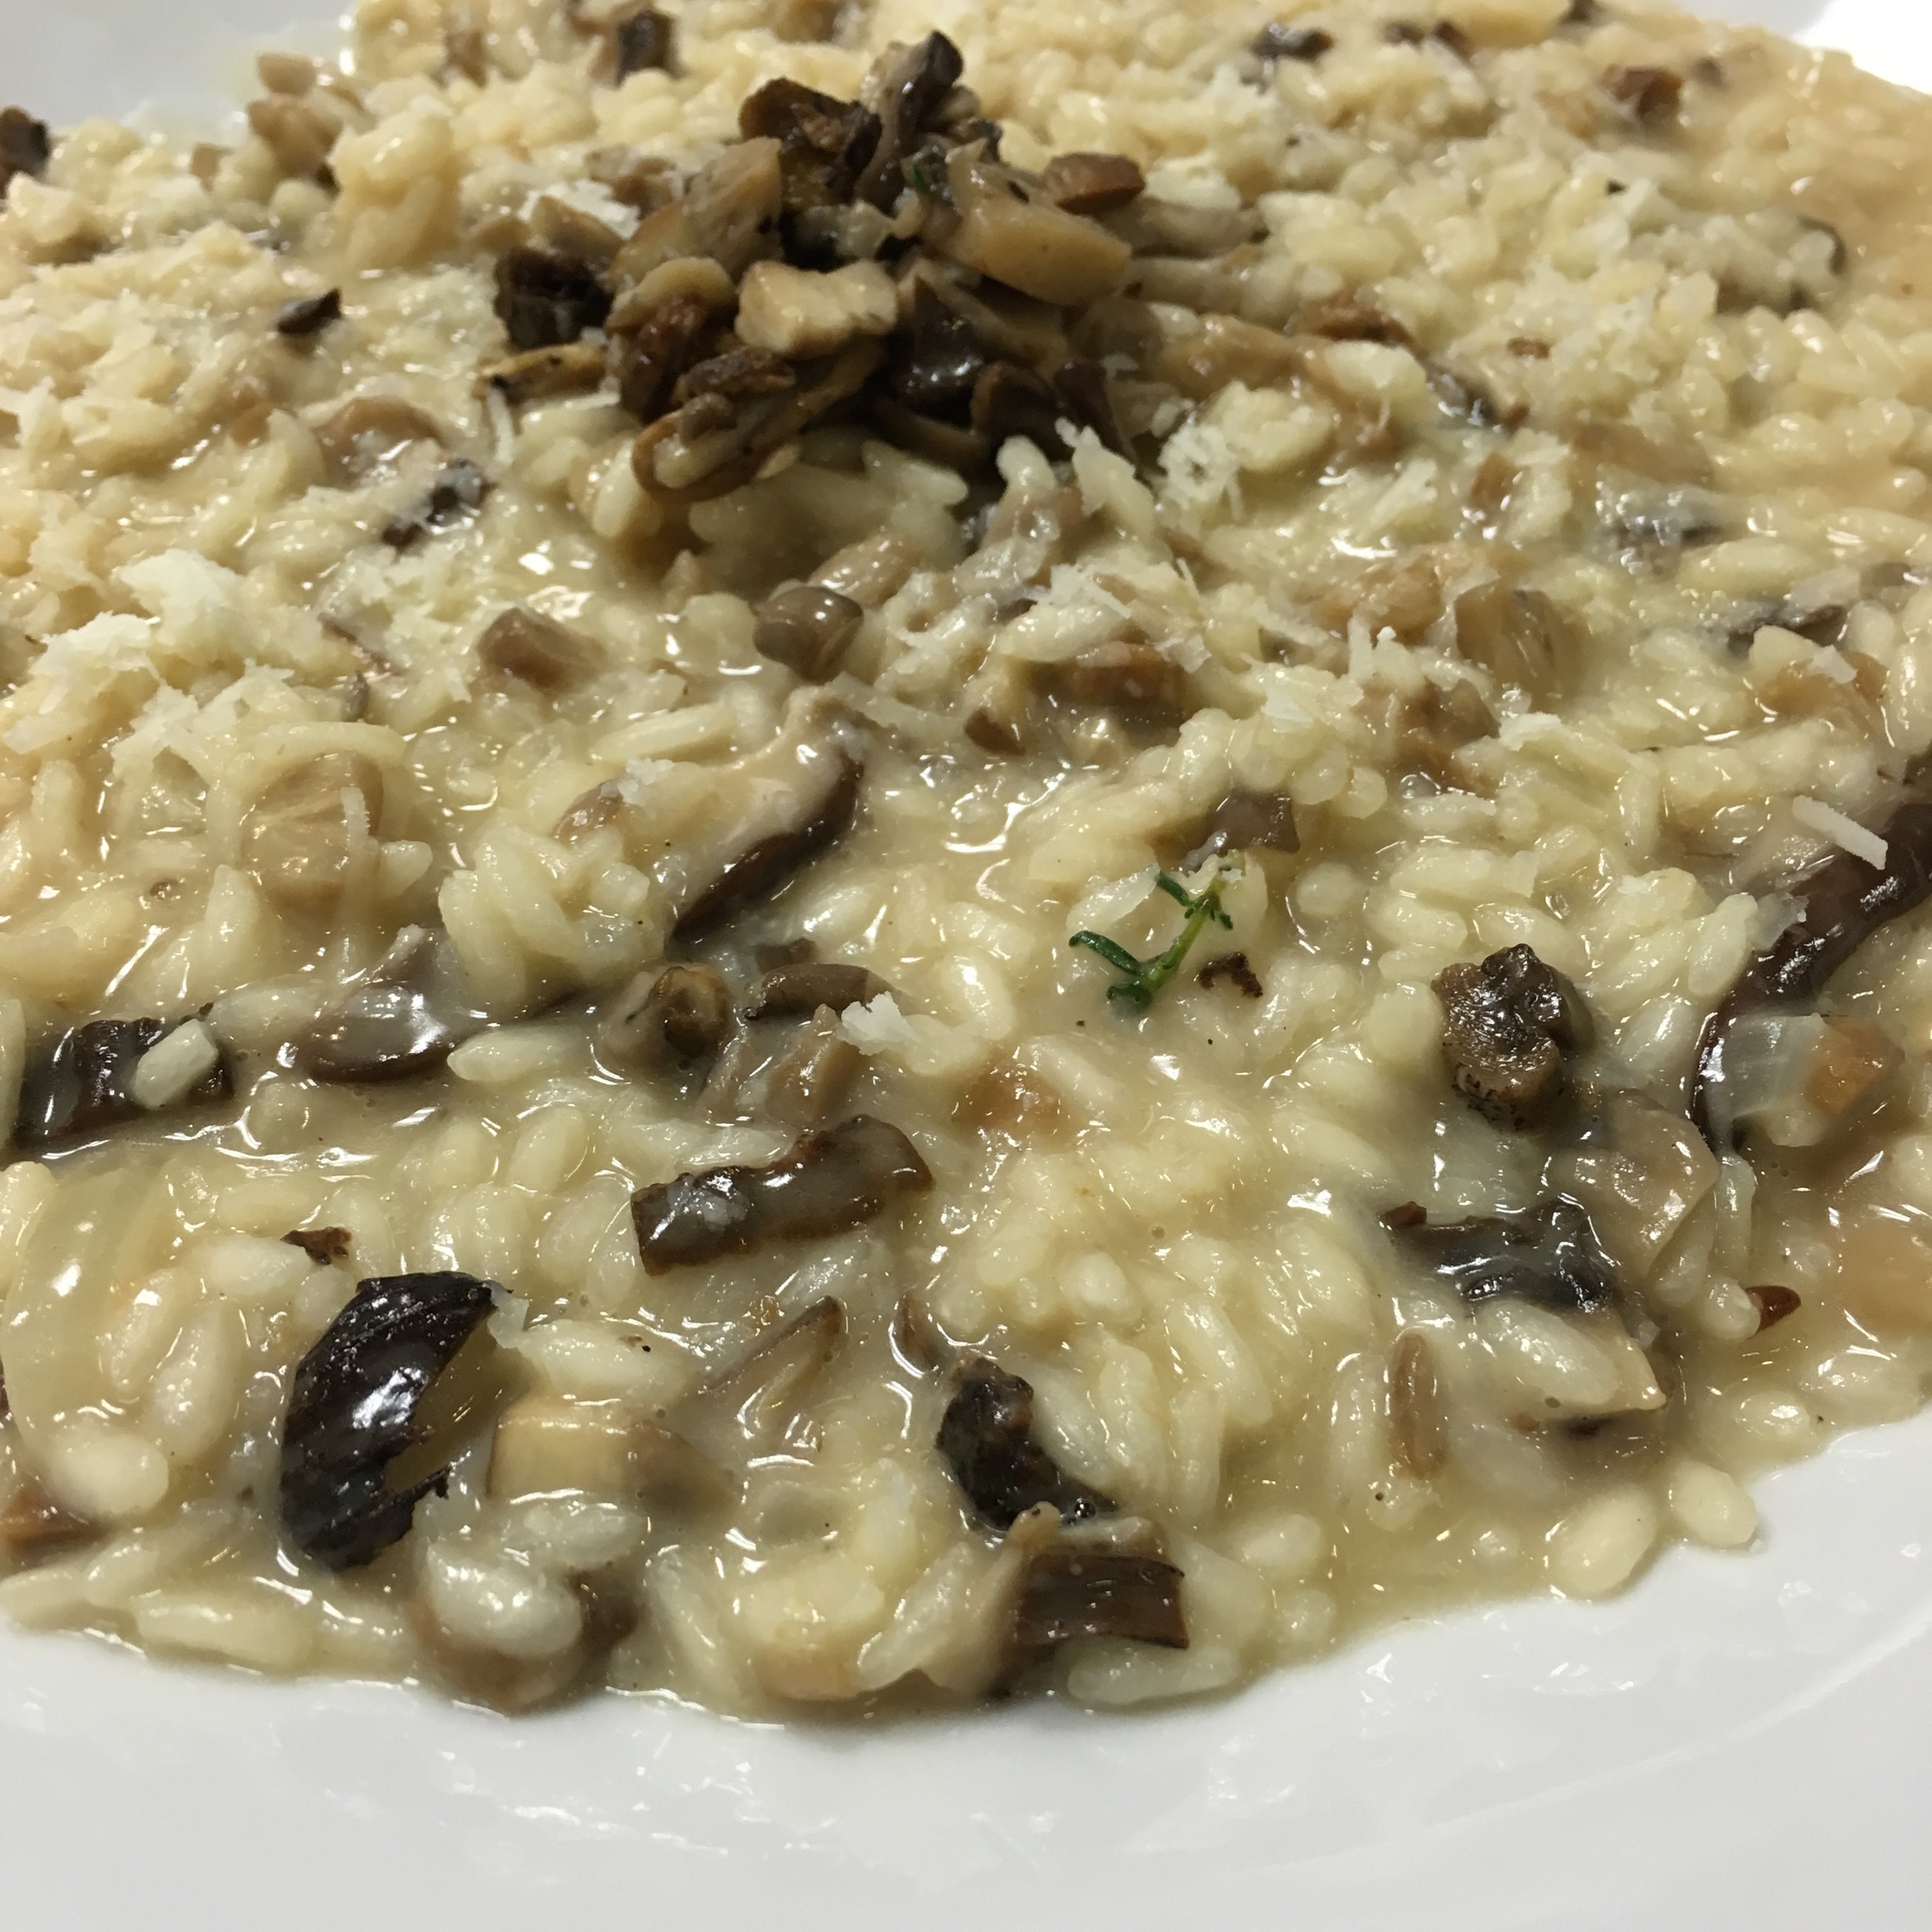 """RISOTTO IS SOMETHING THAT I LOVE YET NEVER TRIED TO MAKE. MAYBE BECAUSE I HAVE BEEN INTIMIDATED BY IT'S REPUTATION AS BEING """"DIFFICULT"""" TO MAKE. I MADE MINE TO THE CONSISTENCY ITALIANS CALL ALL'ONDA, WHICH TRANSLATES TO """"WITH WAVES"""". IT IS CREAMIER THAN THE AMERICAN STYLE, WHICH IS USUALLY """"MOUNDED"""" ON THE PLATE."""